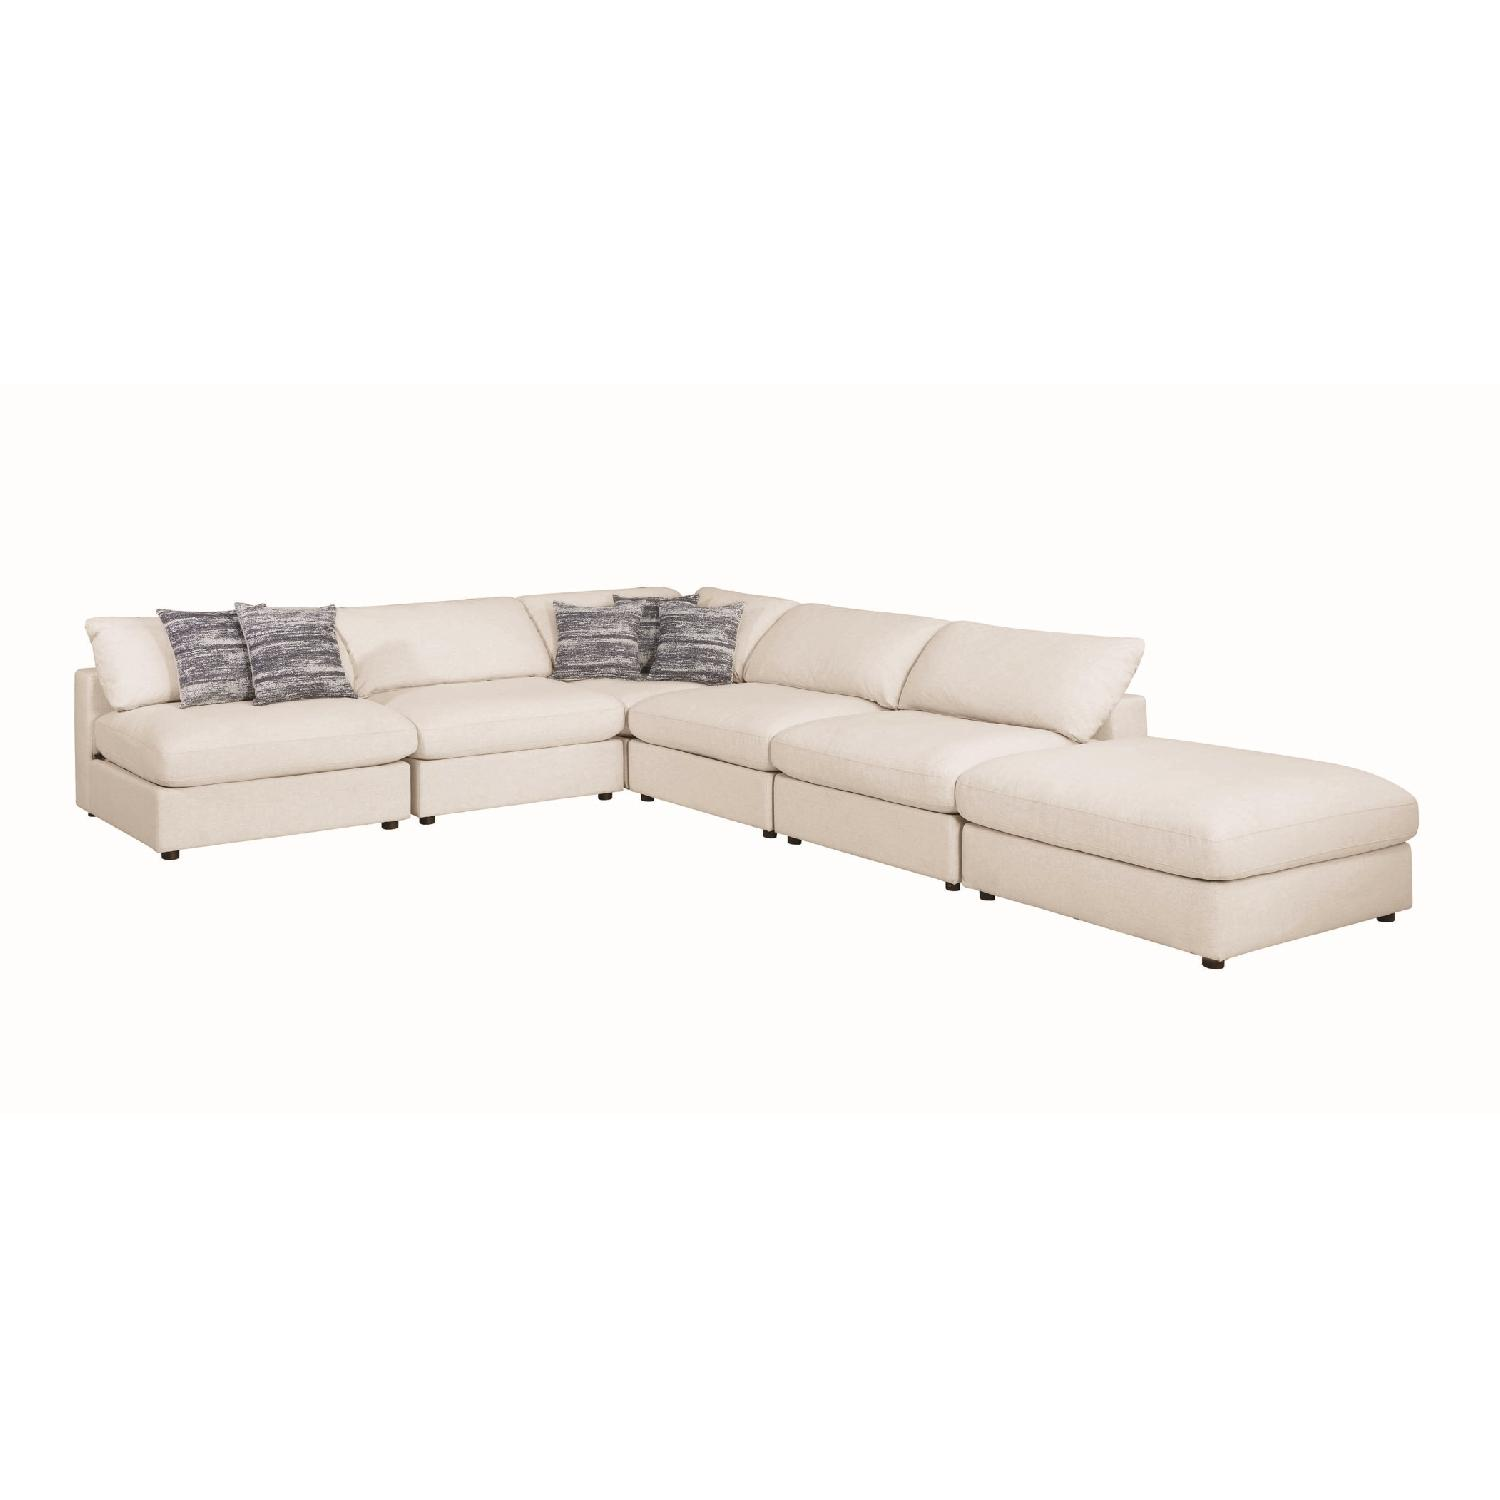 Modern Daybed w/ Trundle Upholstered in Light Grey Fabric - image-9